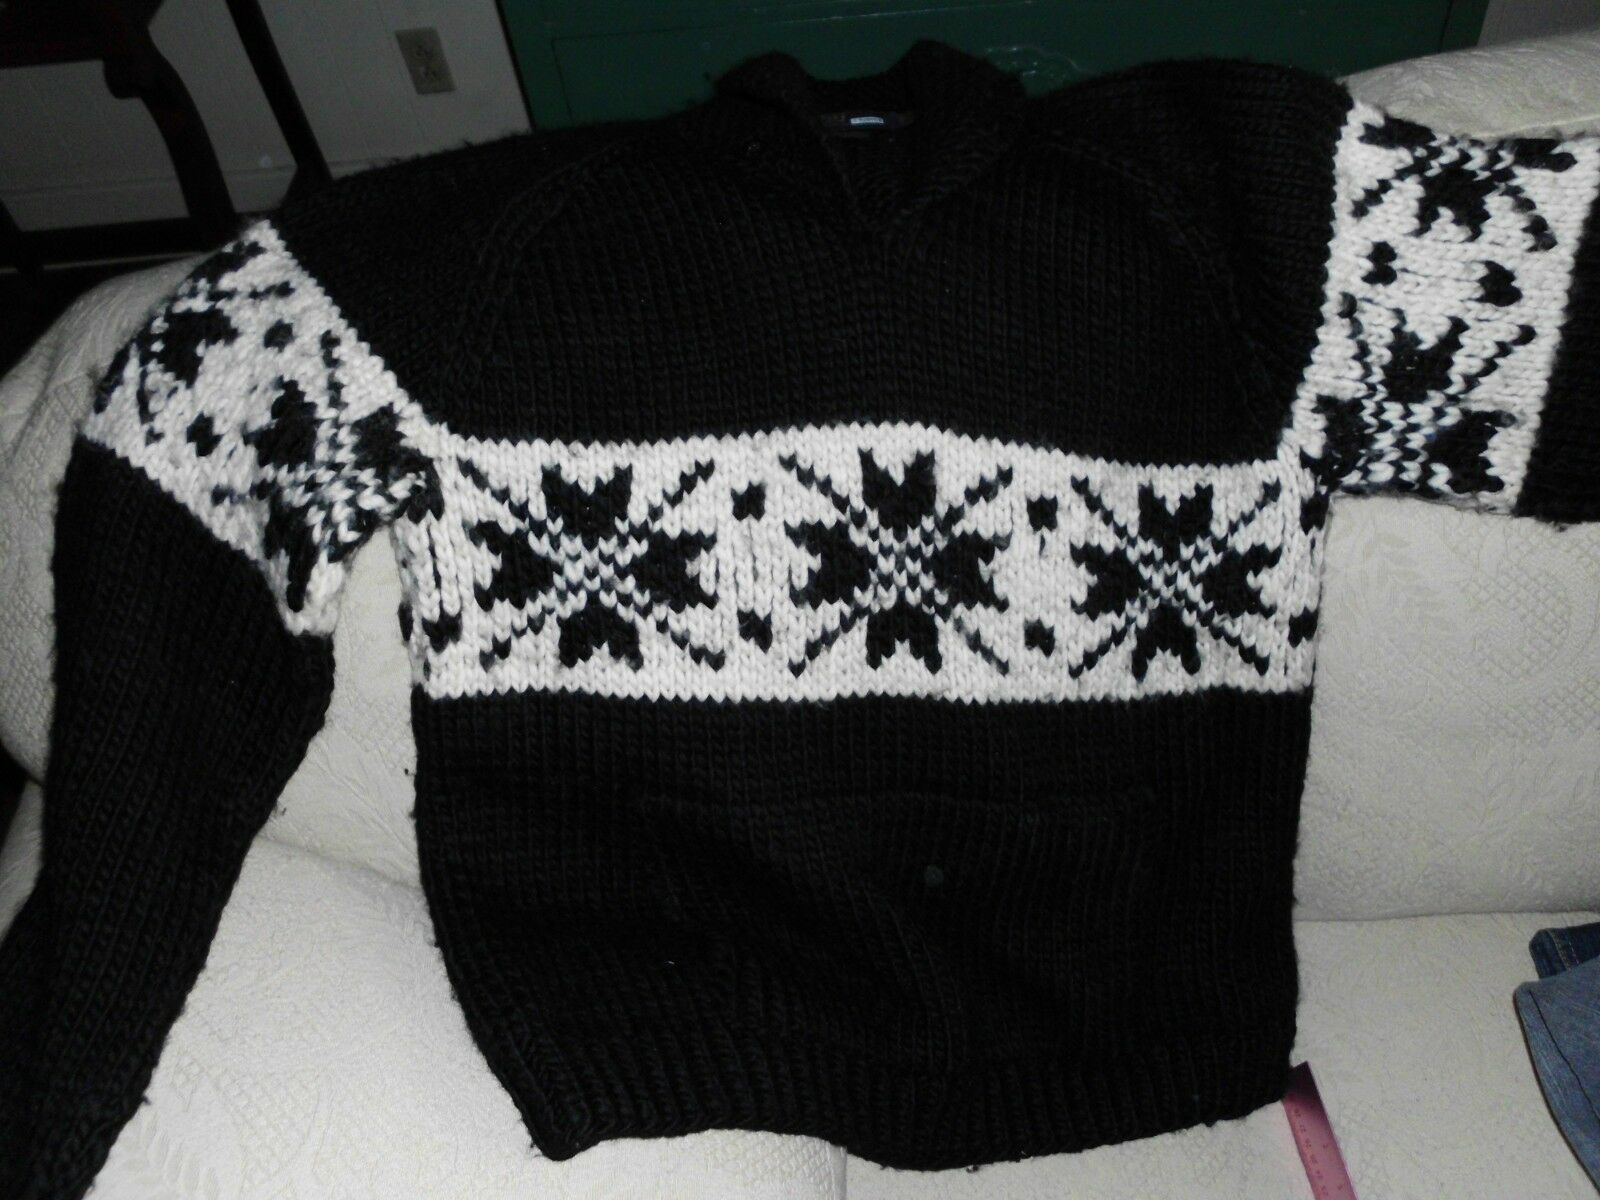 Polo, Hand knitted sweater, 100% wool